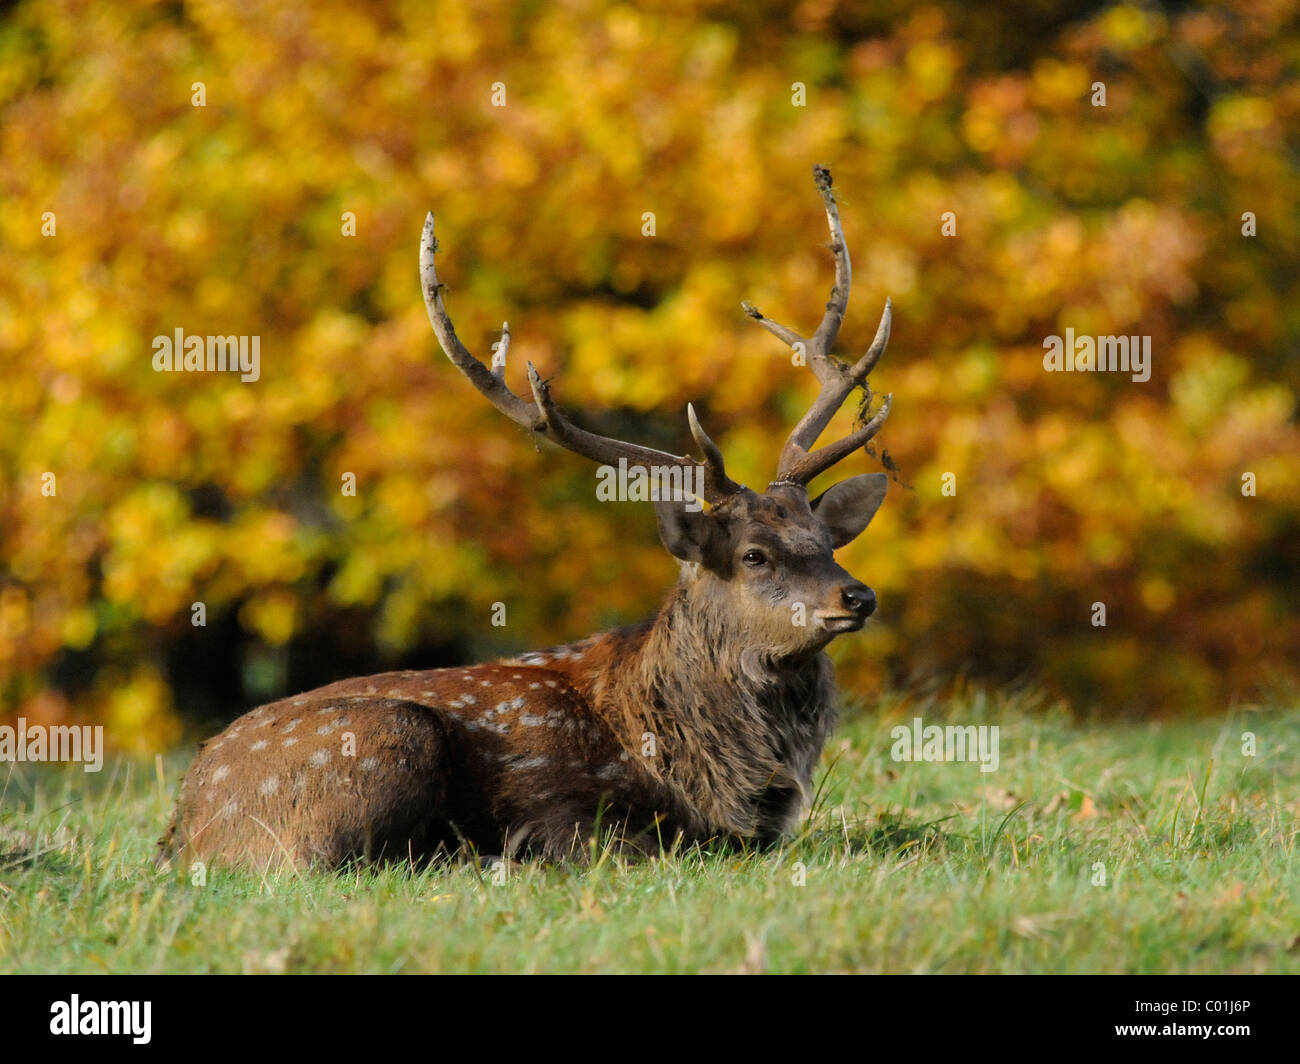 A young deer sitting by Autumn foliage in the countryside. - Stock Image